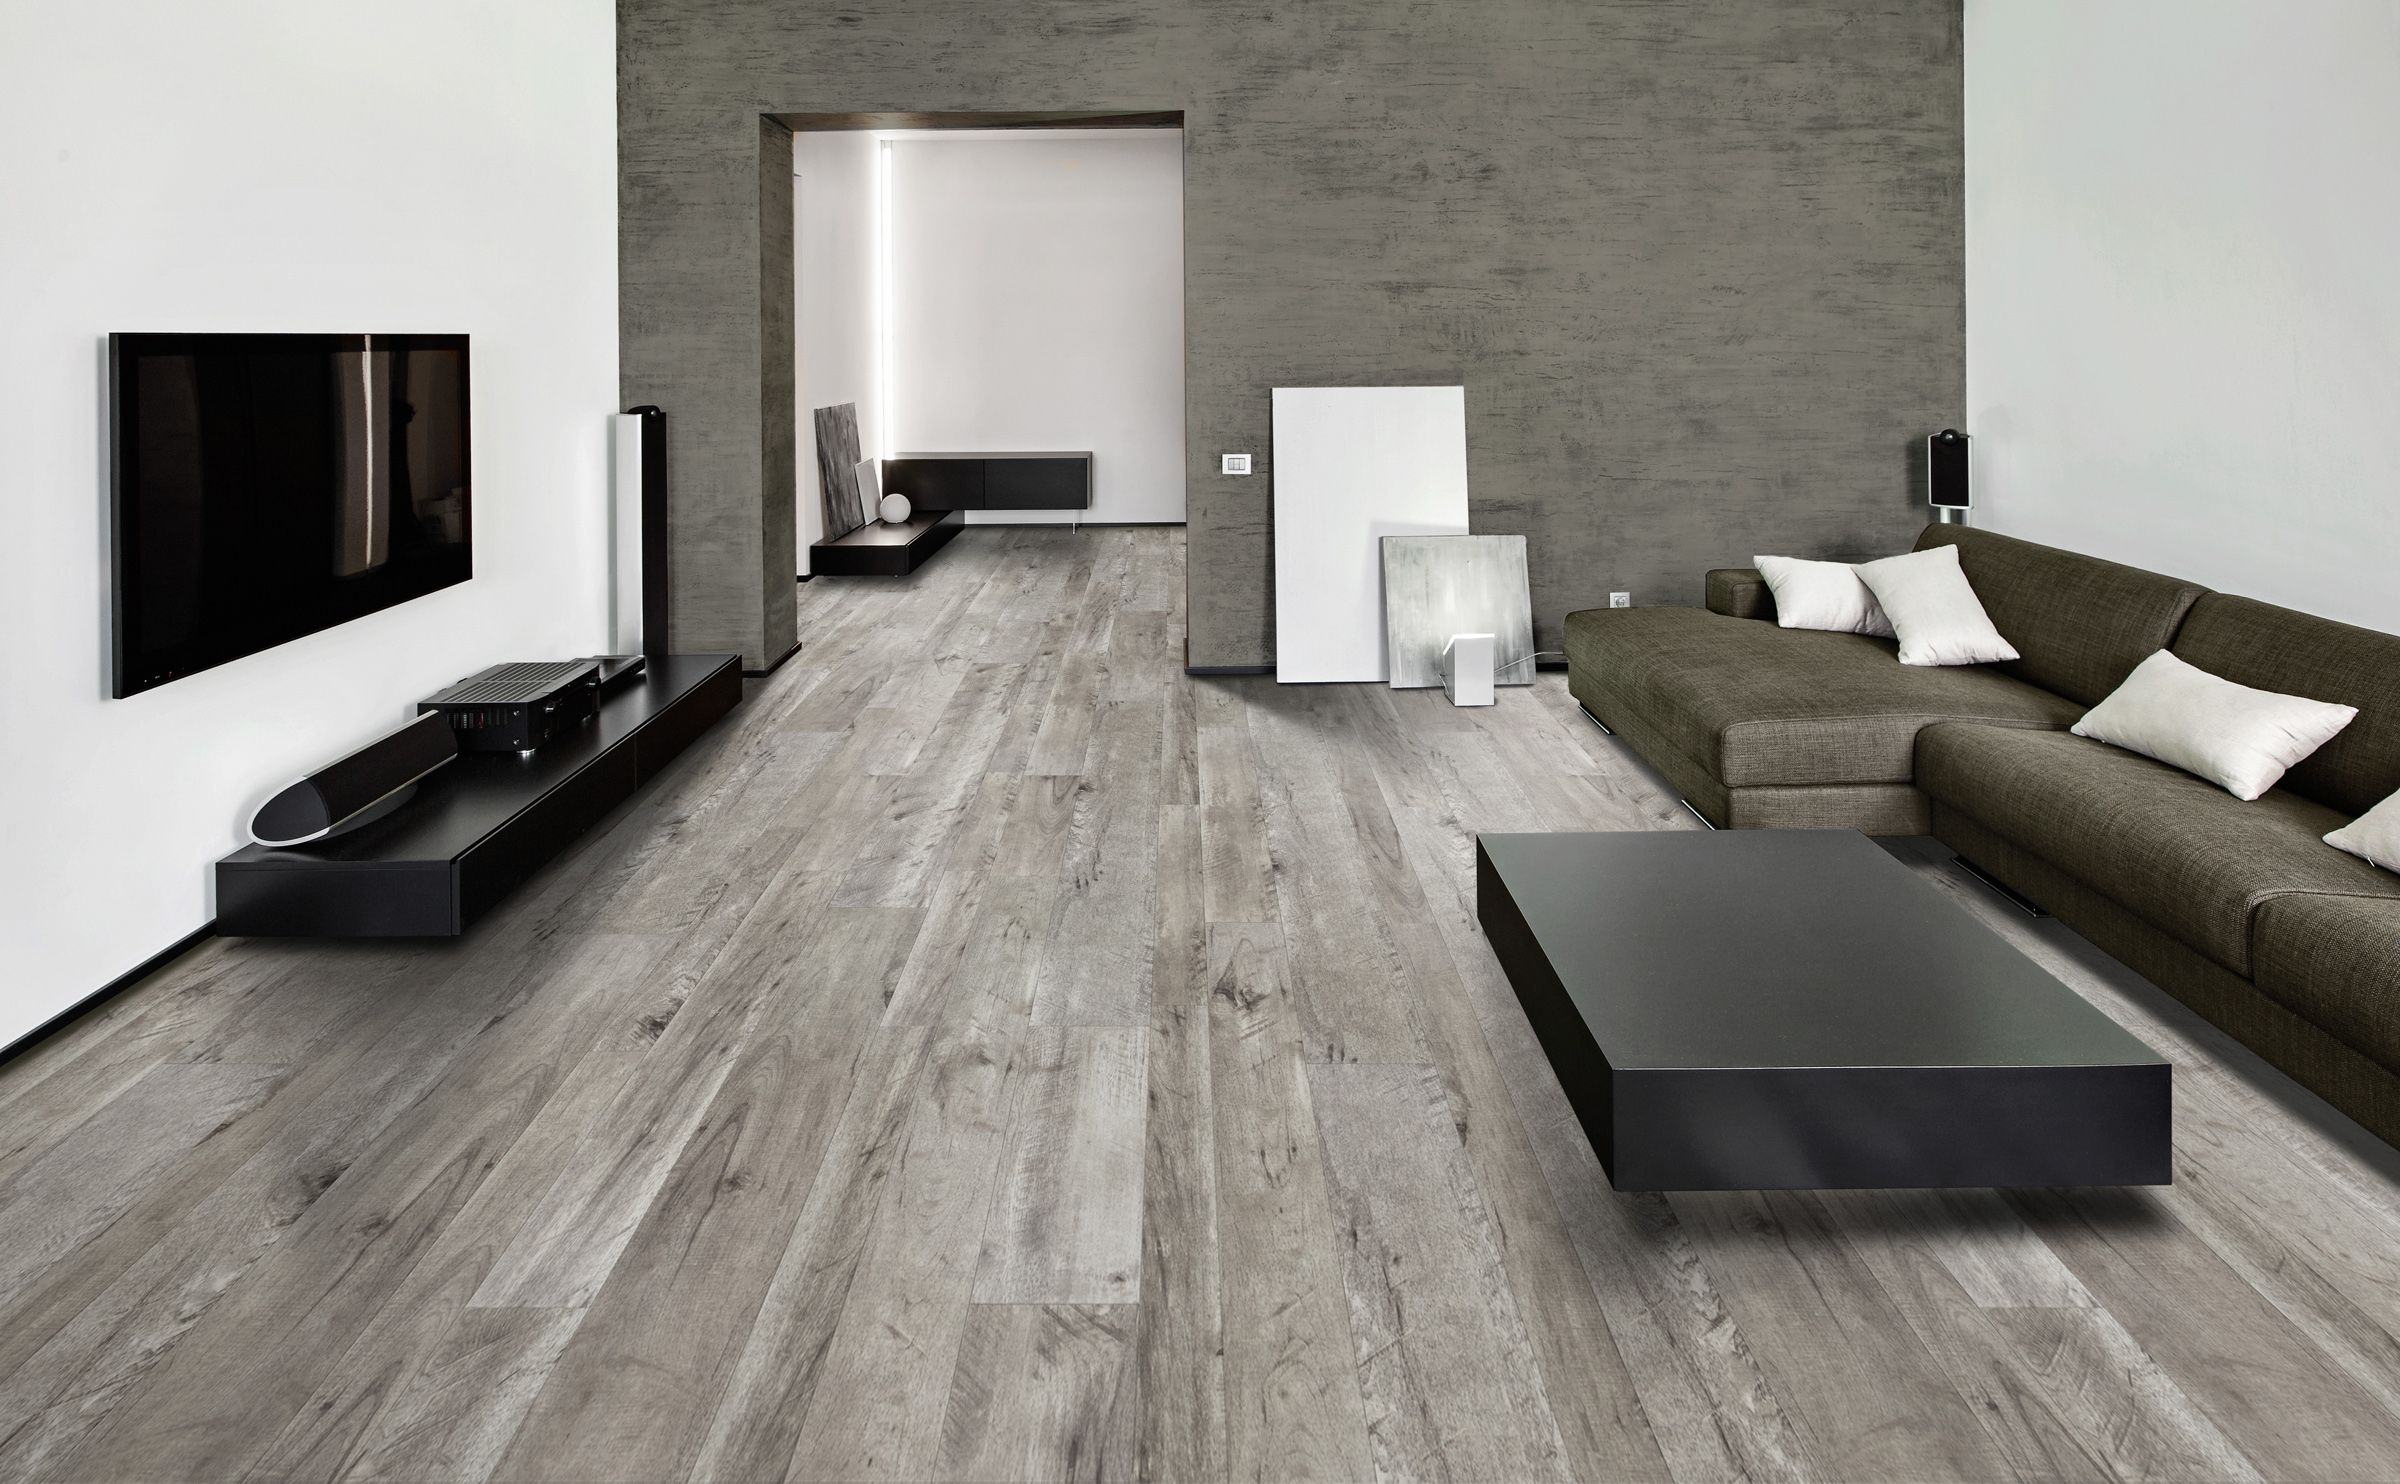 Our New Twilight Maple Random Width And Length 12mm Laminate Flooring Featuring 3 Differe Engineered Hardwood Flooring Laminate Flooring Laminate Flooring Diy